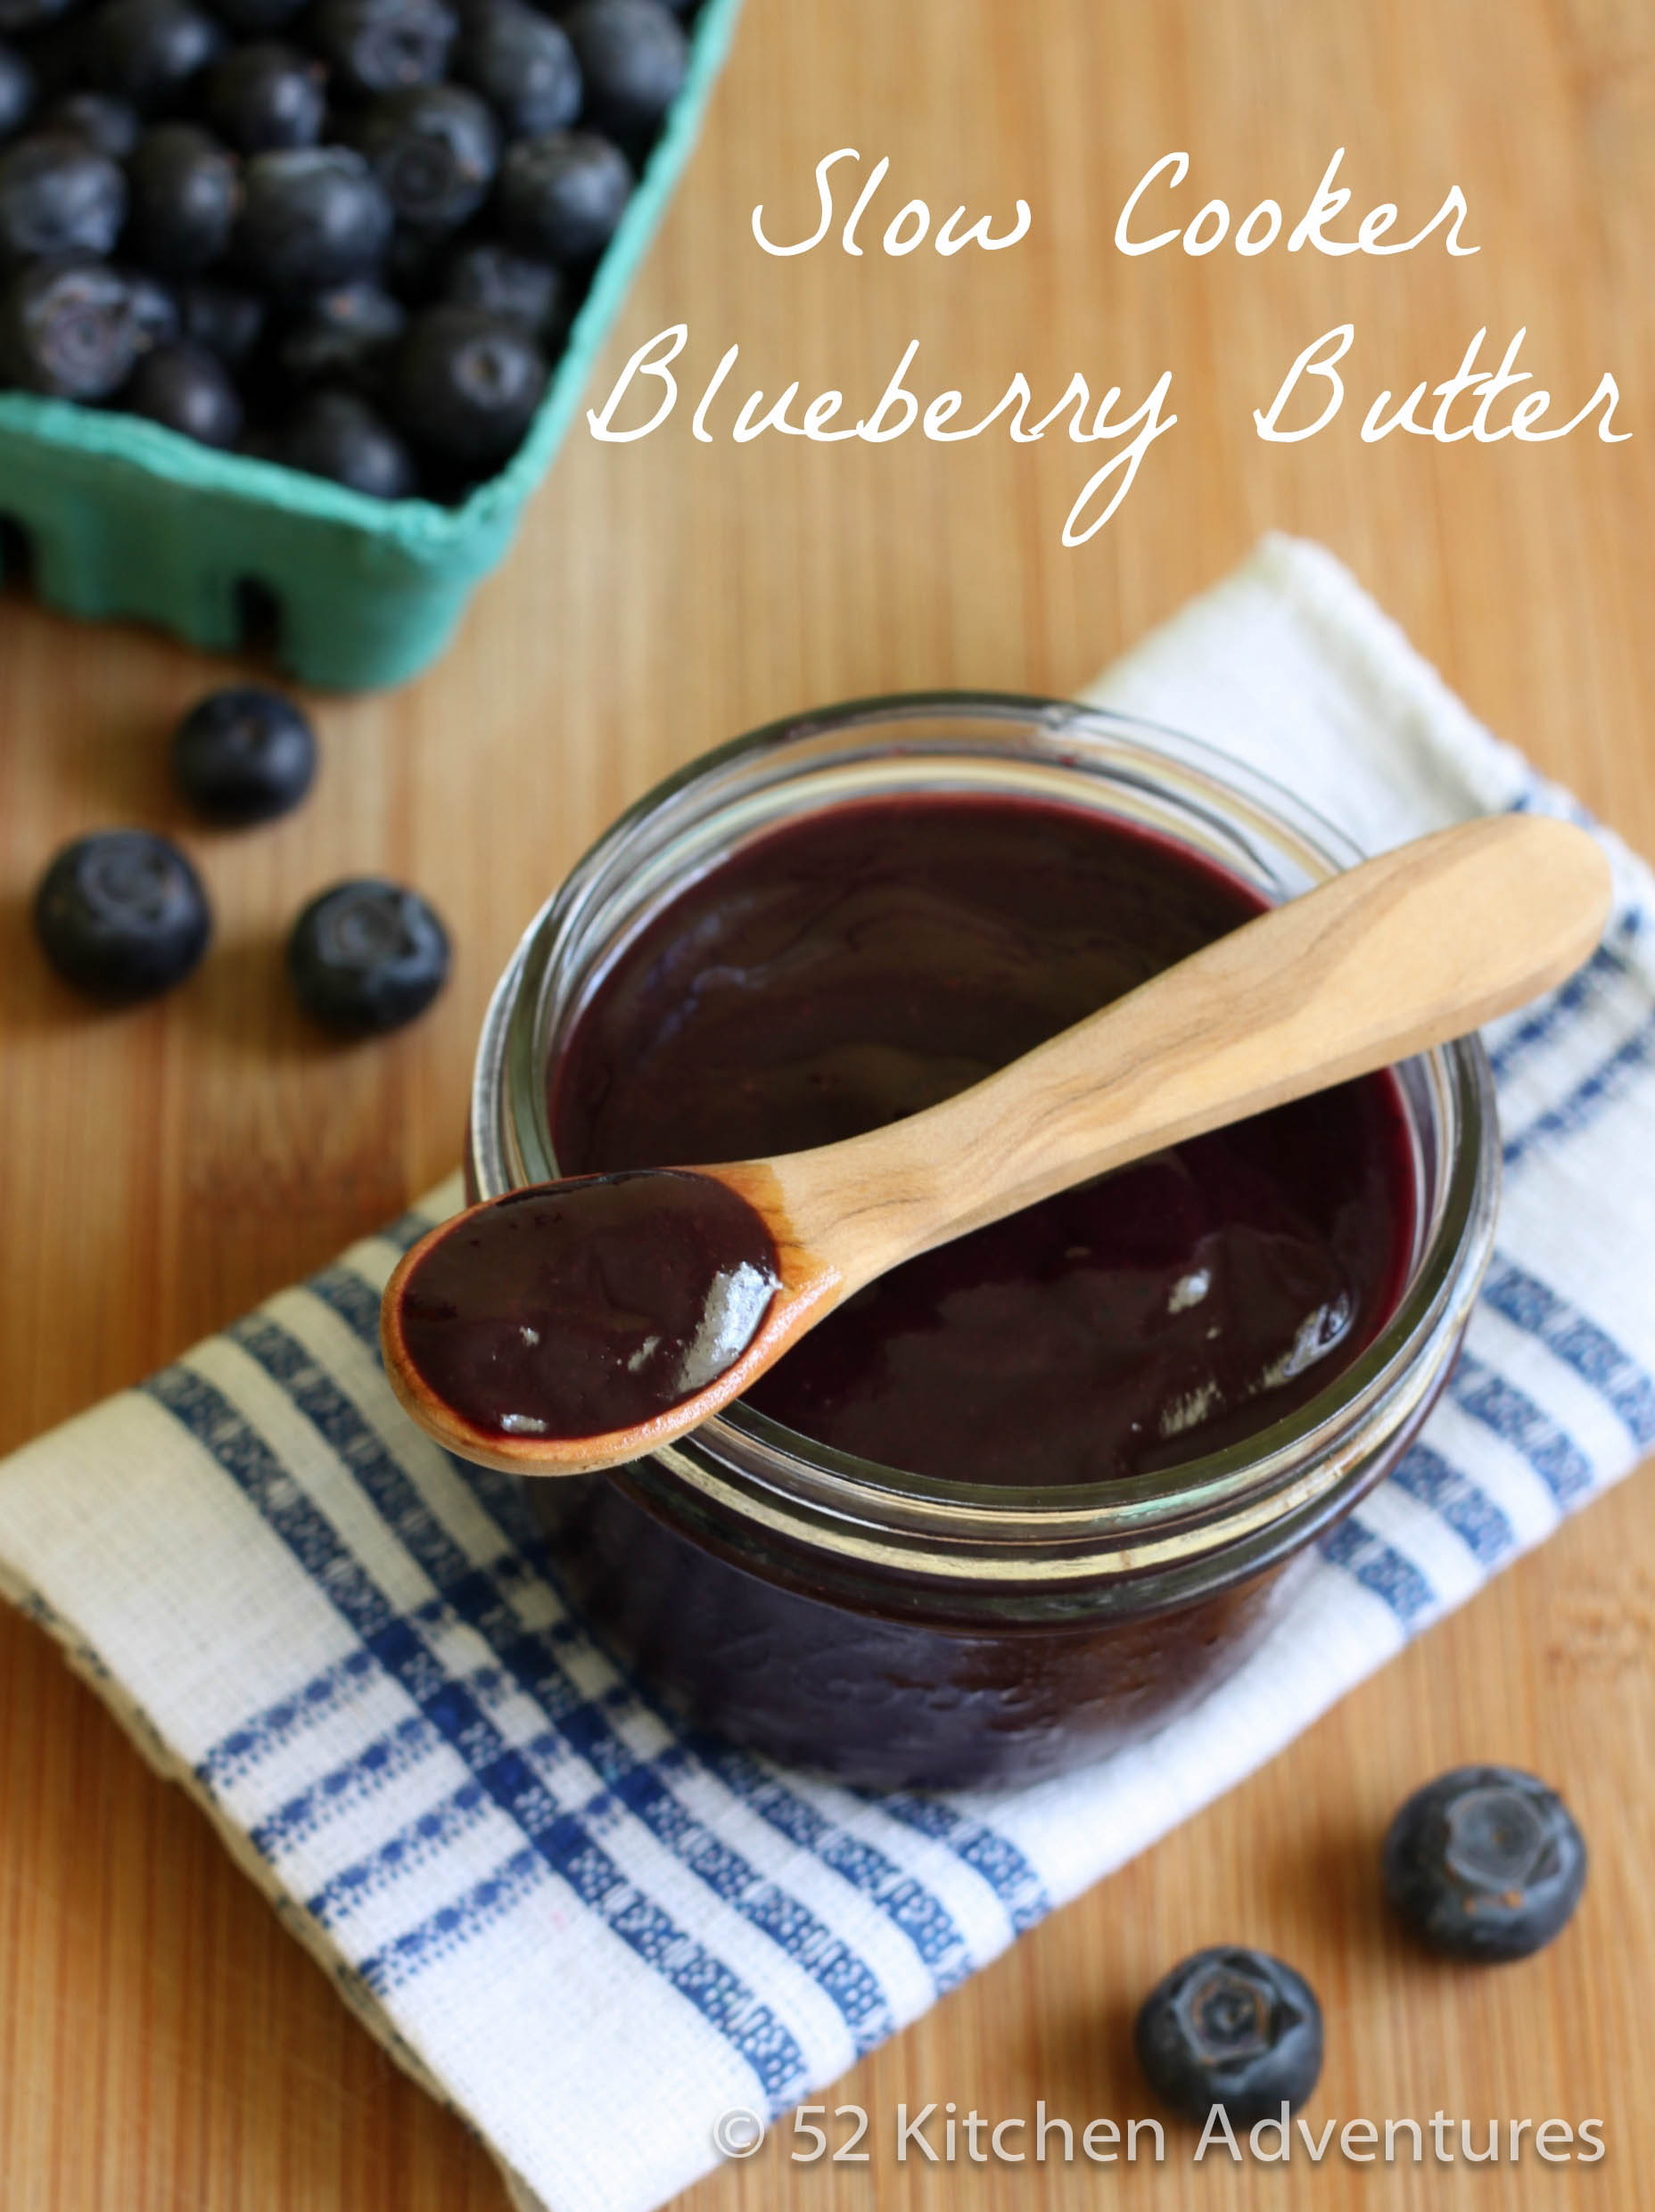 Recipe: Slow cooker blueberry butter